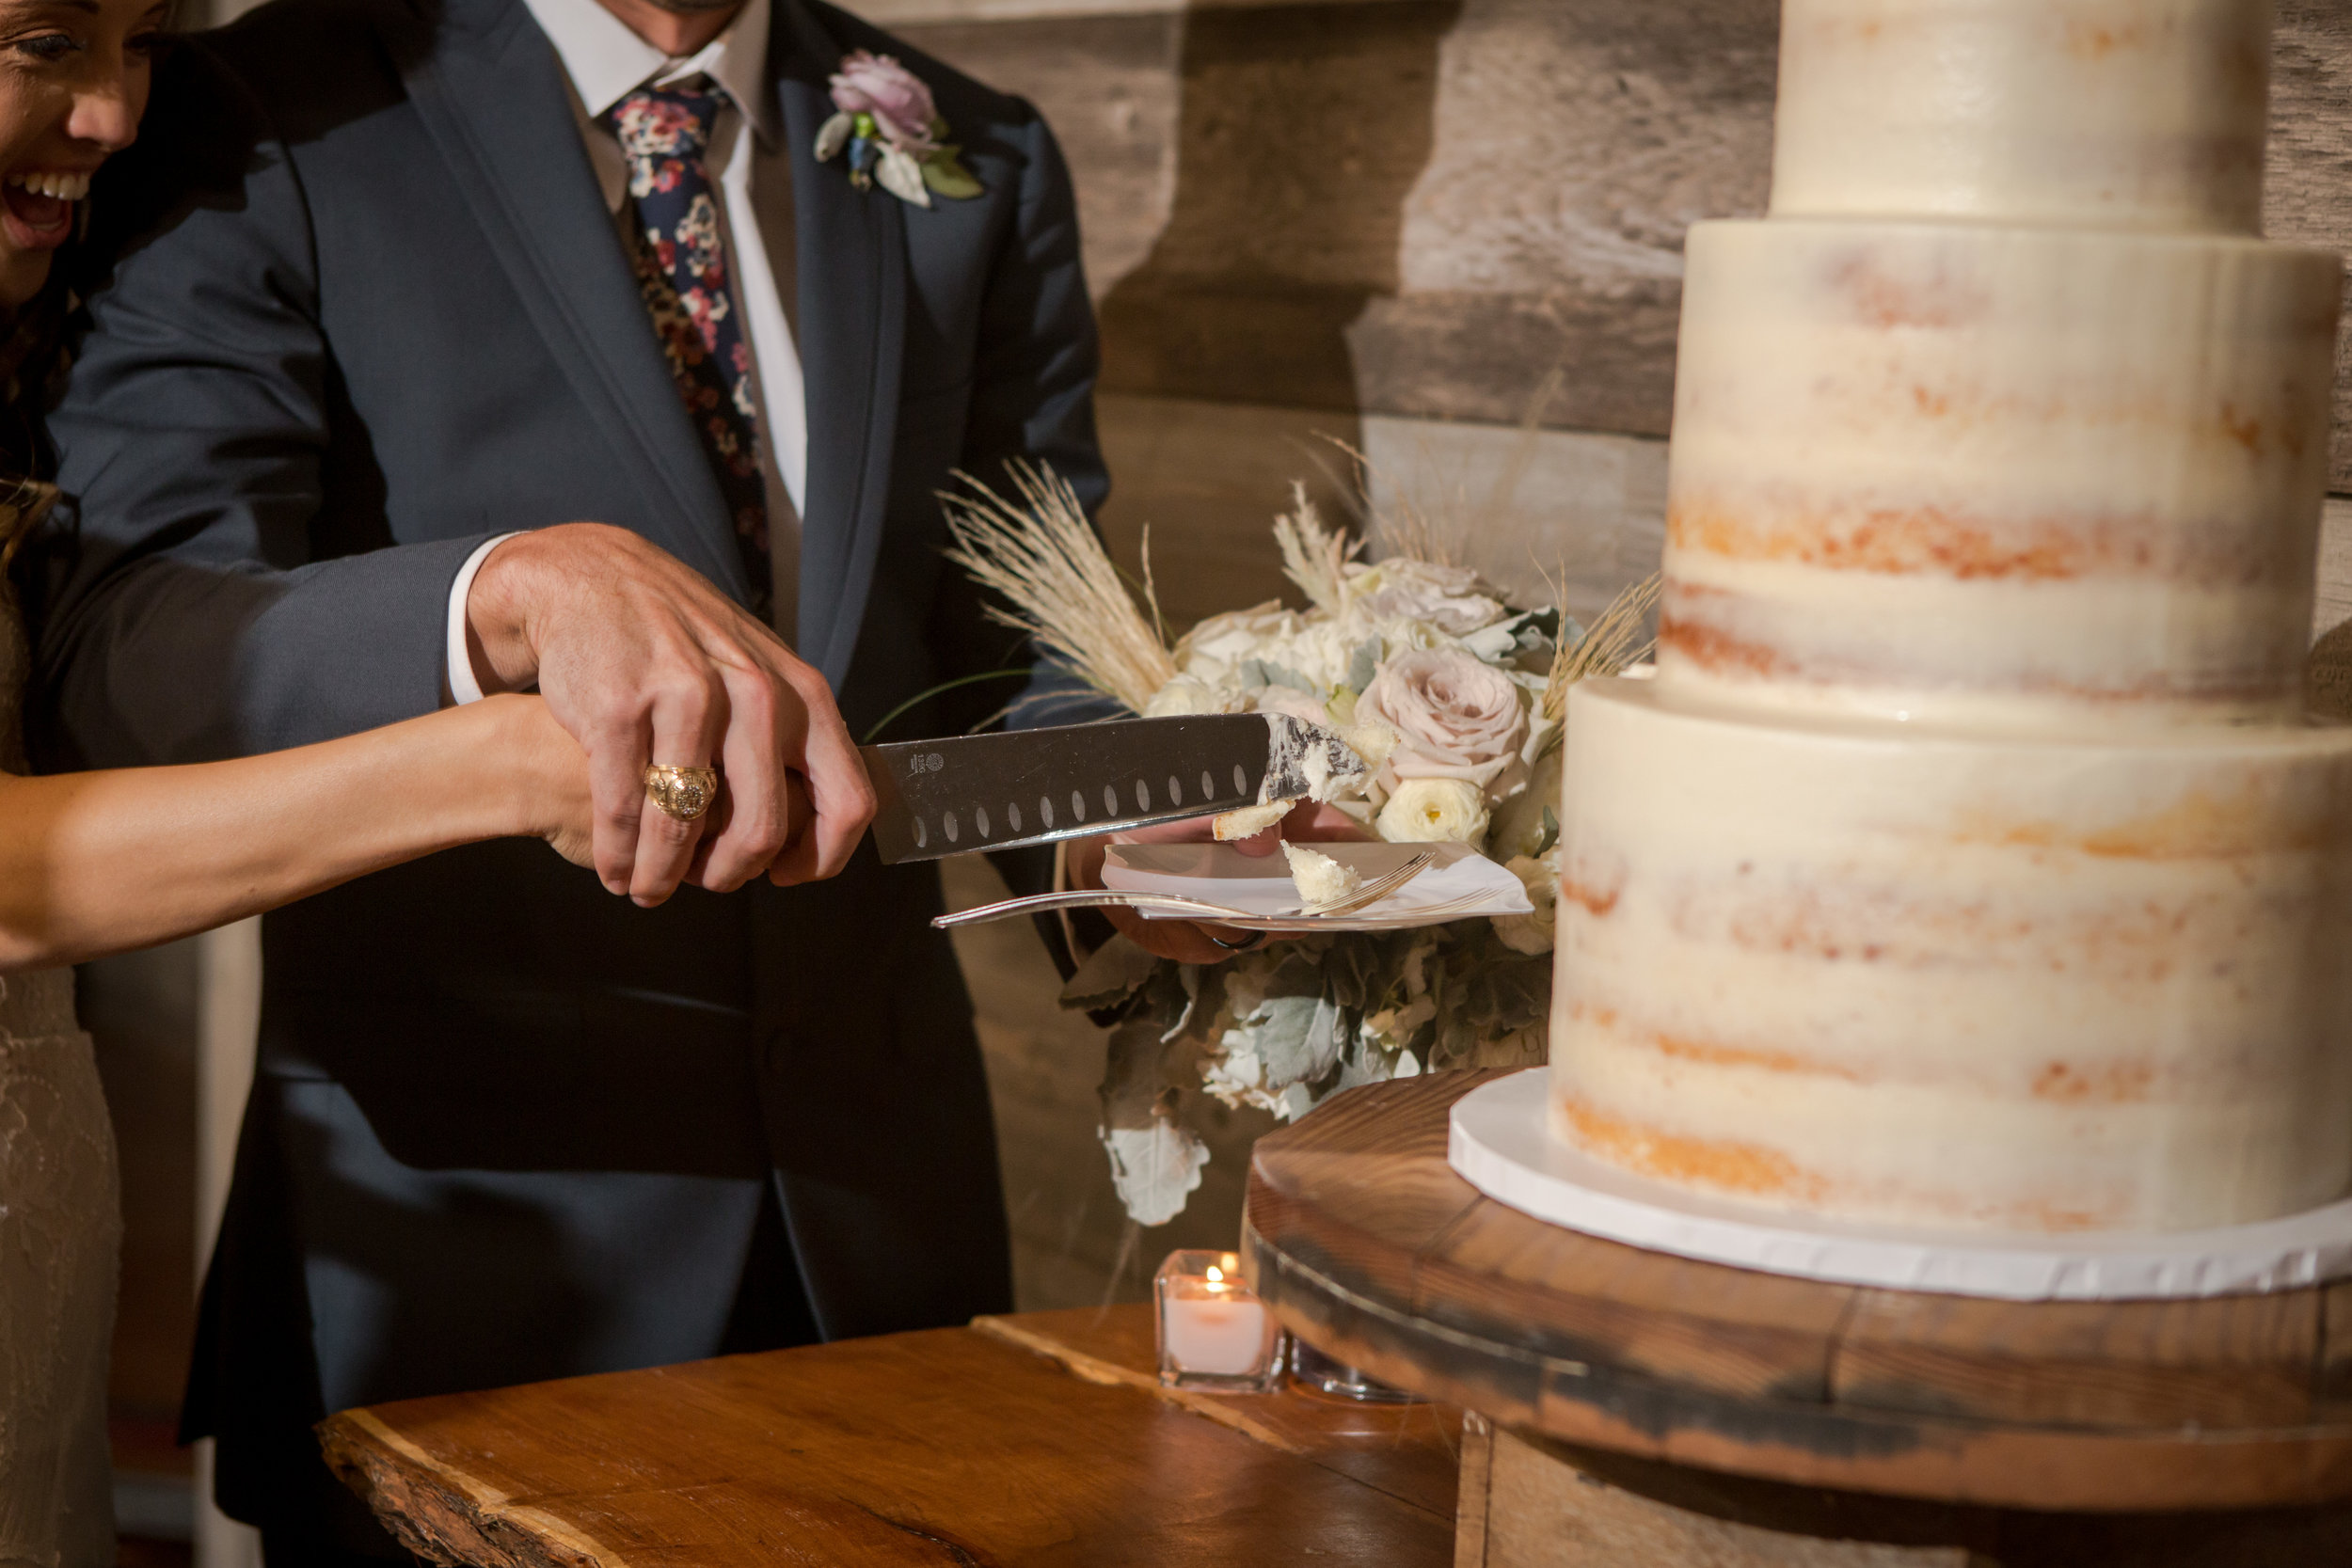 Bride and groom cutting their rustic wedding cake with unfinished white frosting.